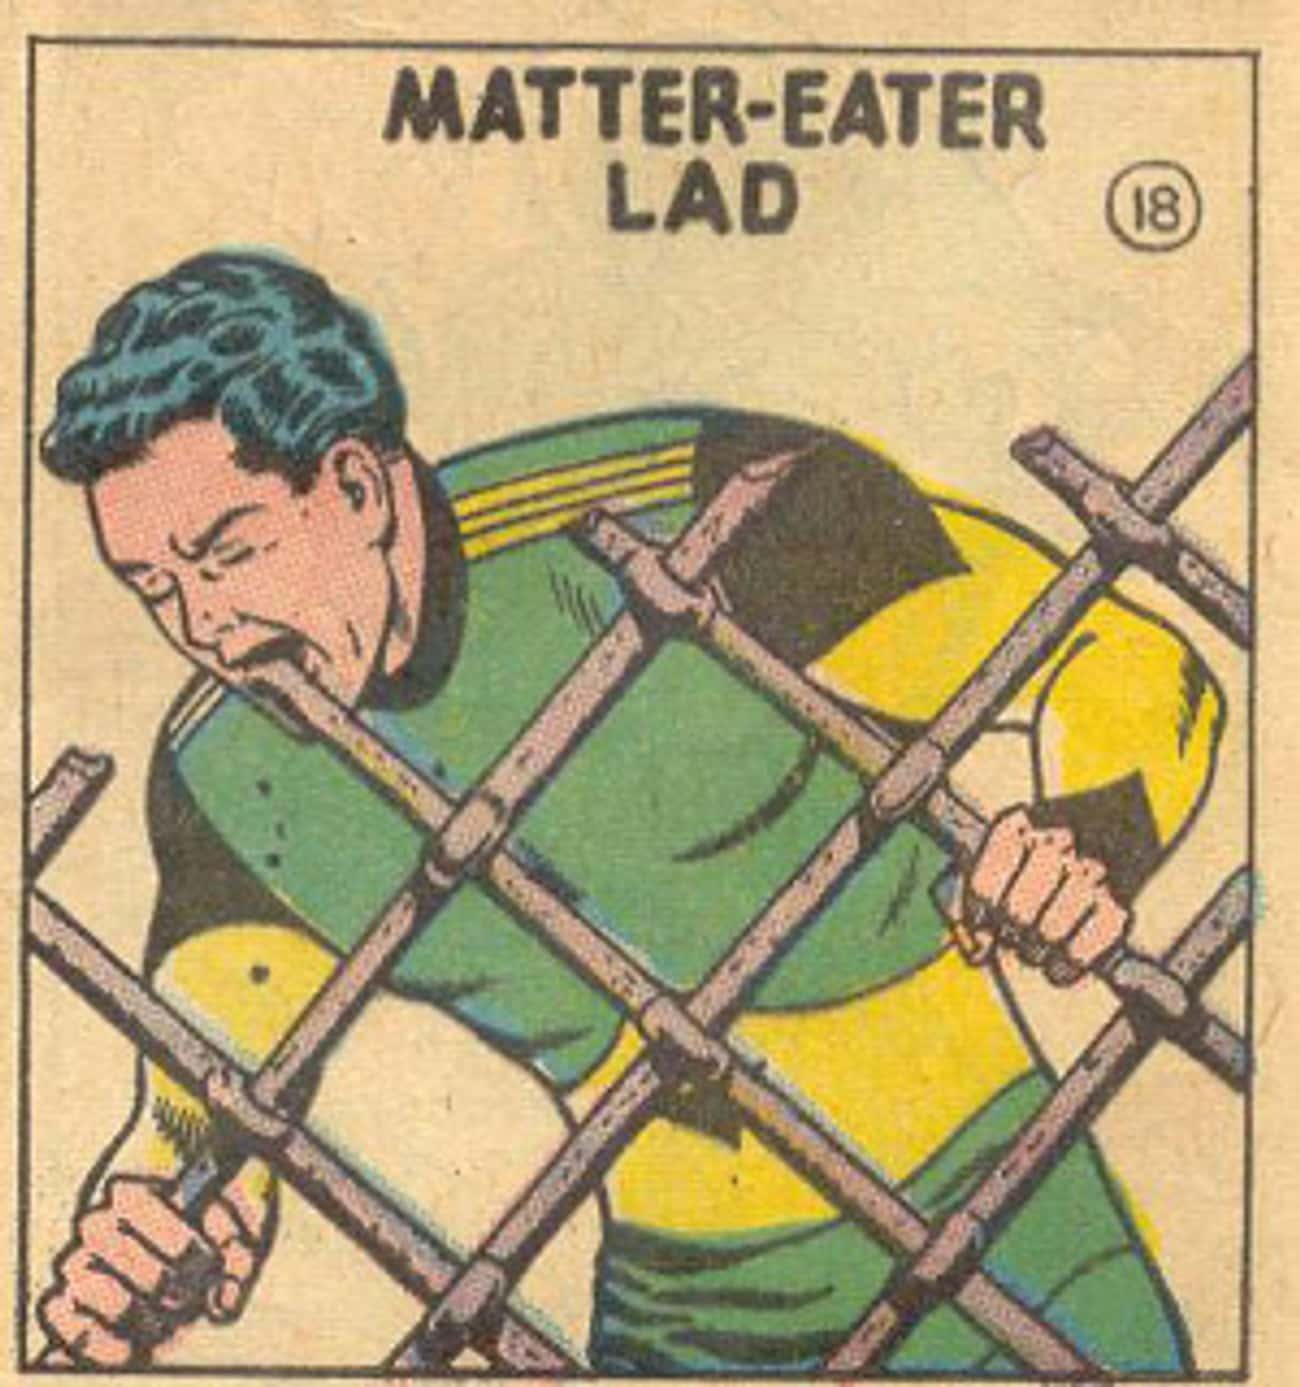 [Image: matter-eater-lad-comic-book-characters-p...=650&dpr=2]